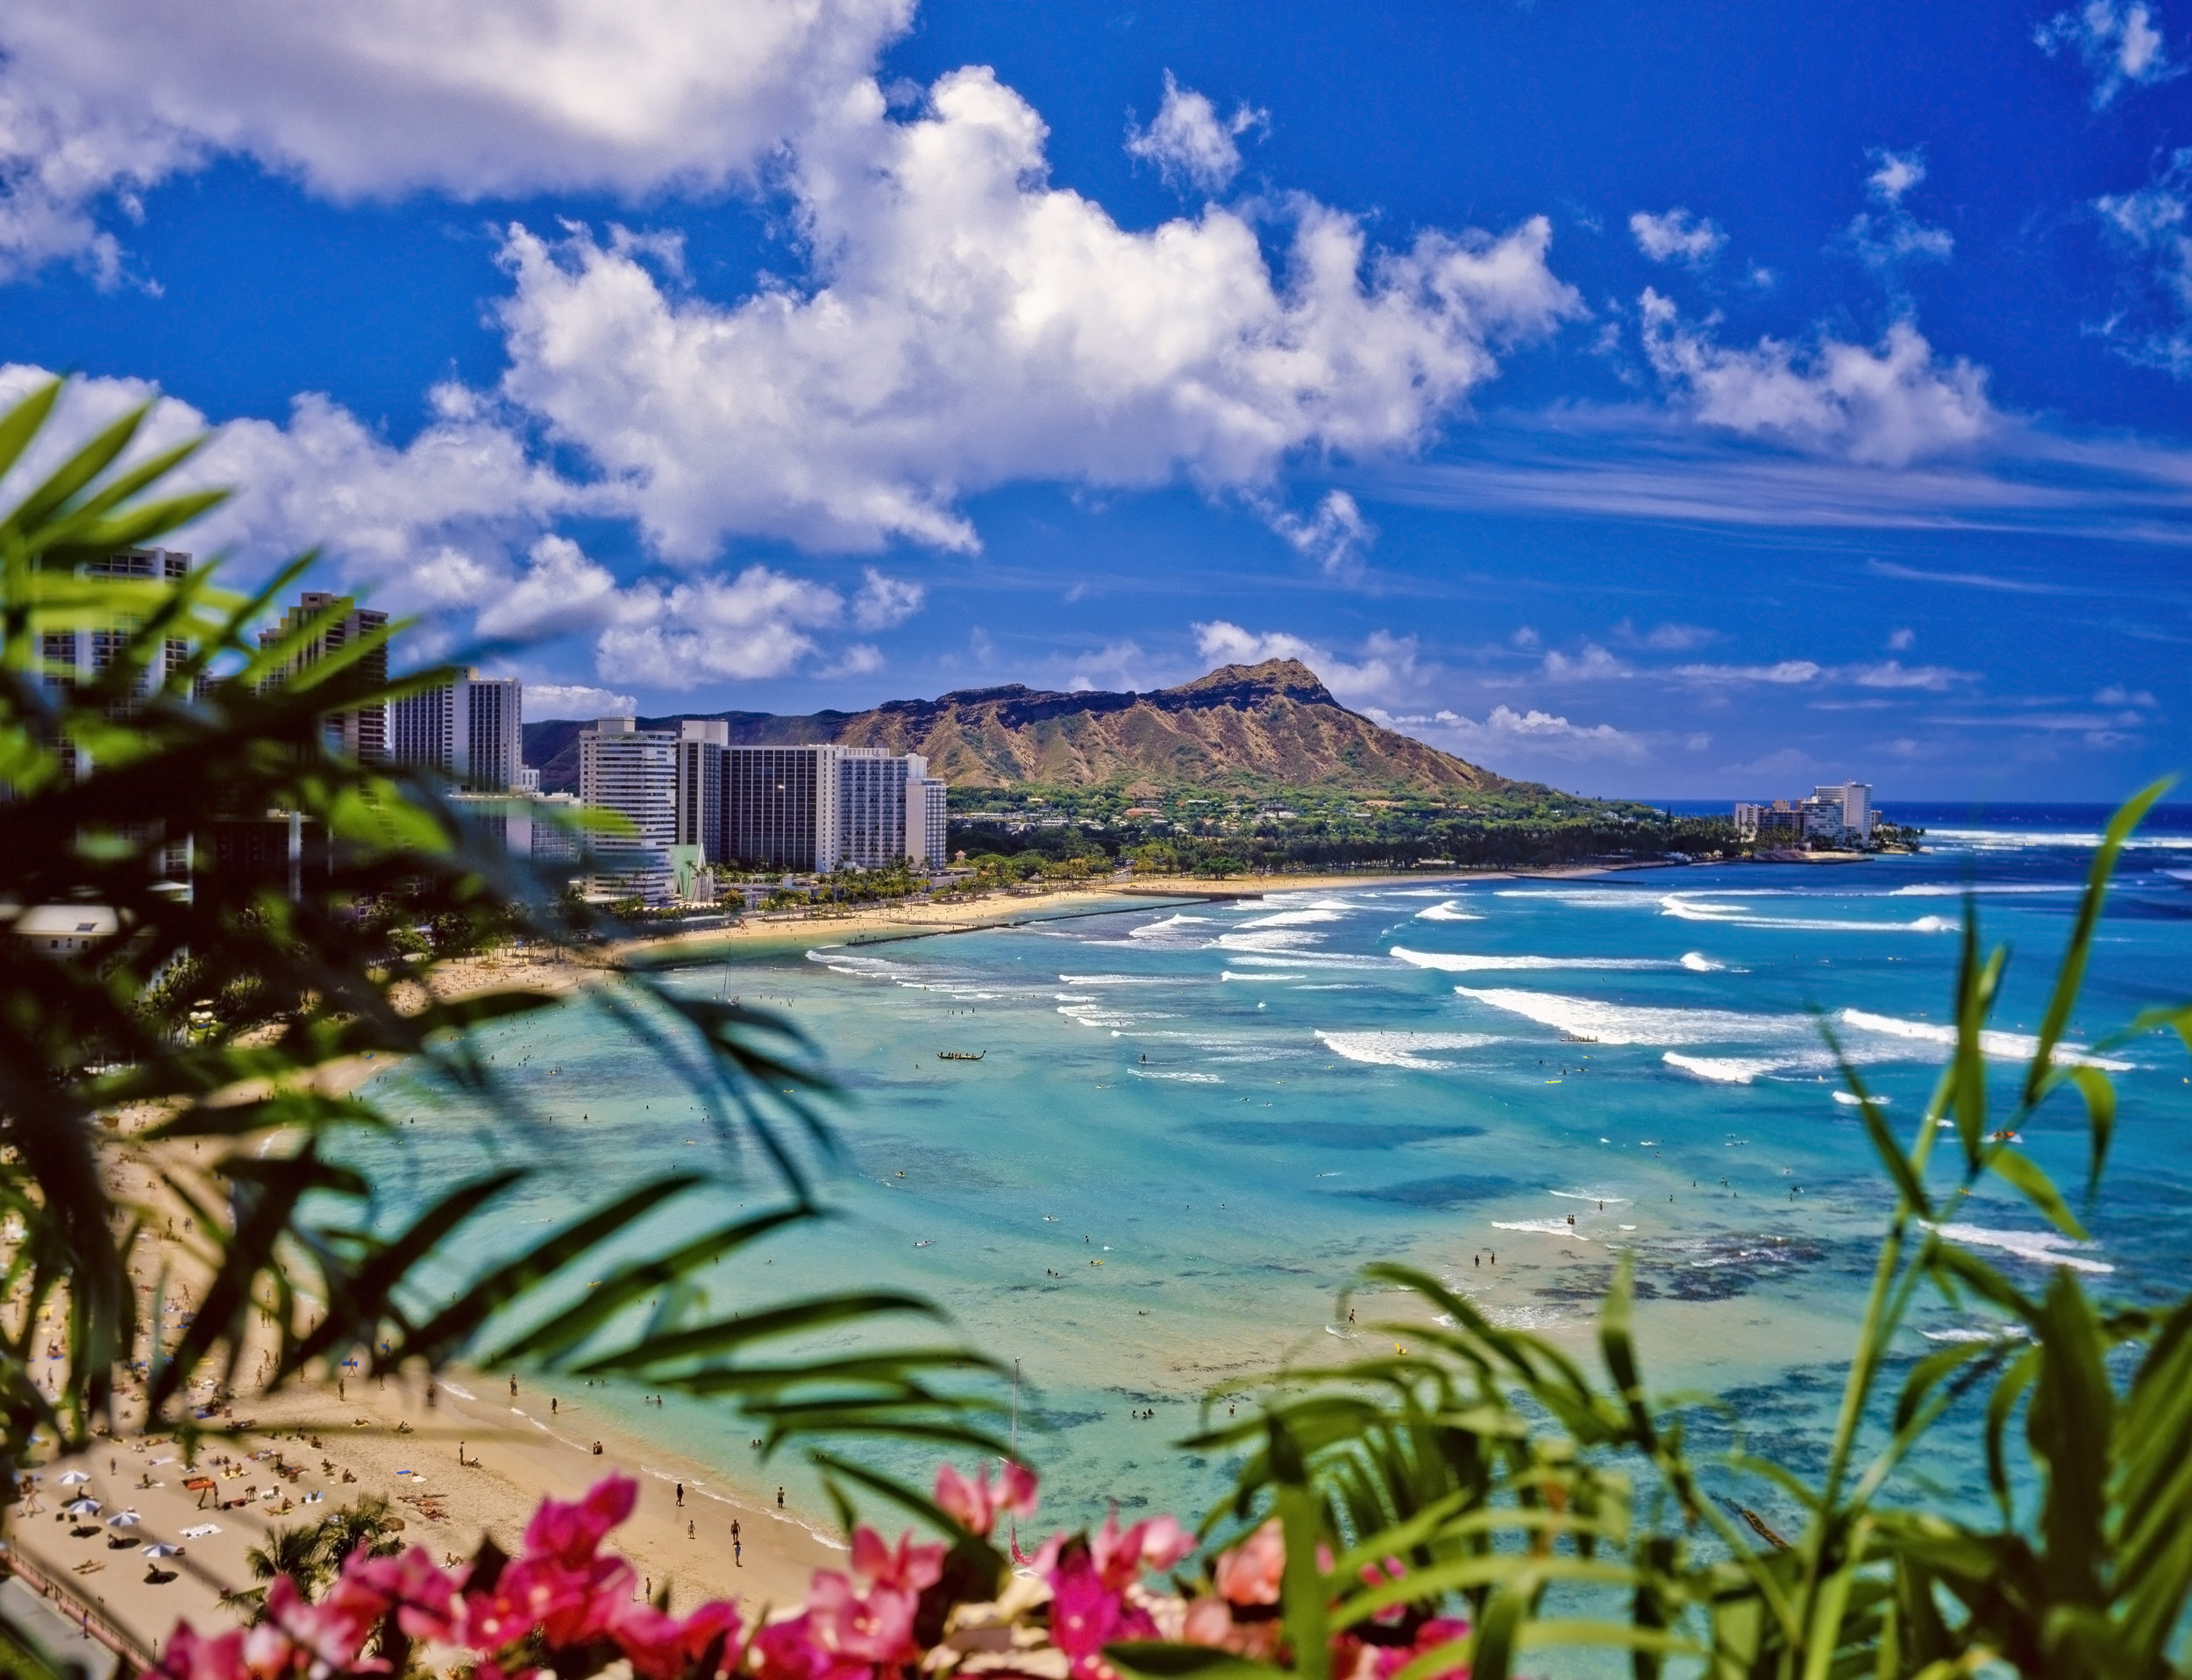 Hawaii  There is no better place to spend your summer than the extremely beautiful beaches of Hawaii. With weather that stays pretty much awesome all year round, this place has amazing islands where every island has something exciting to offer